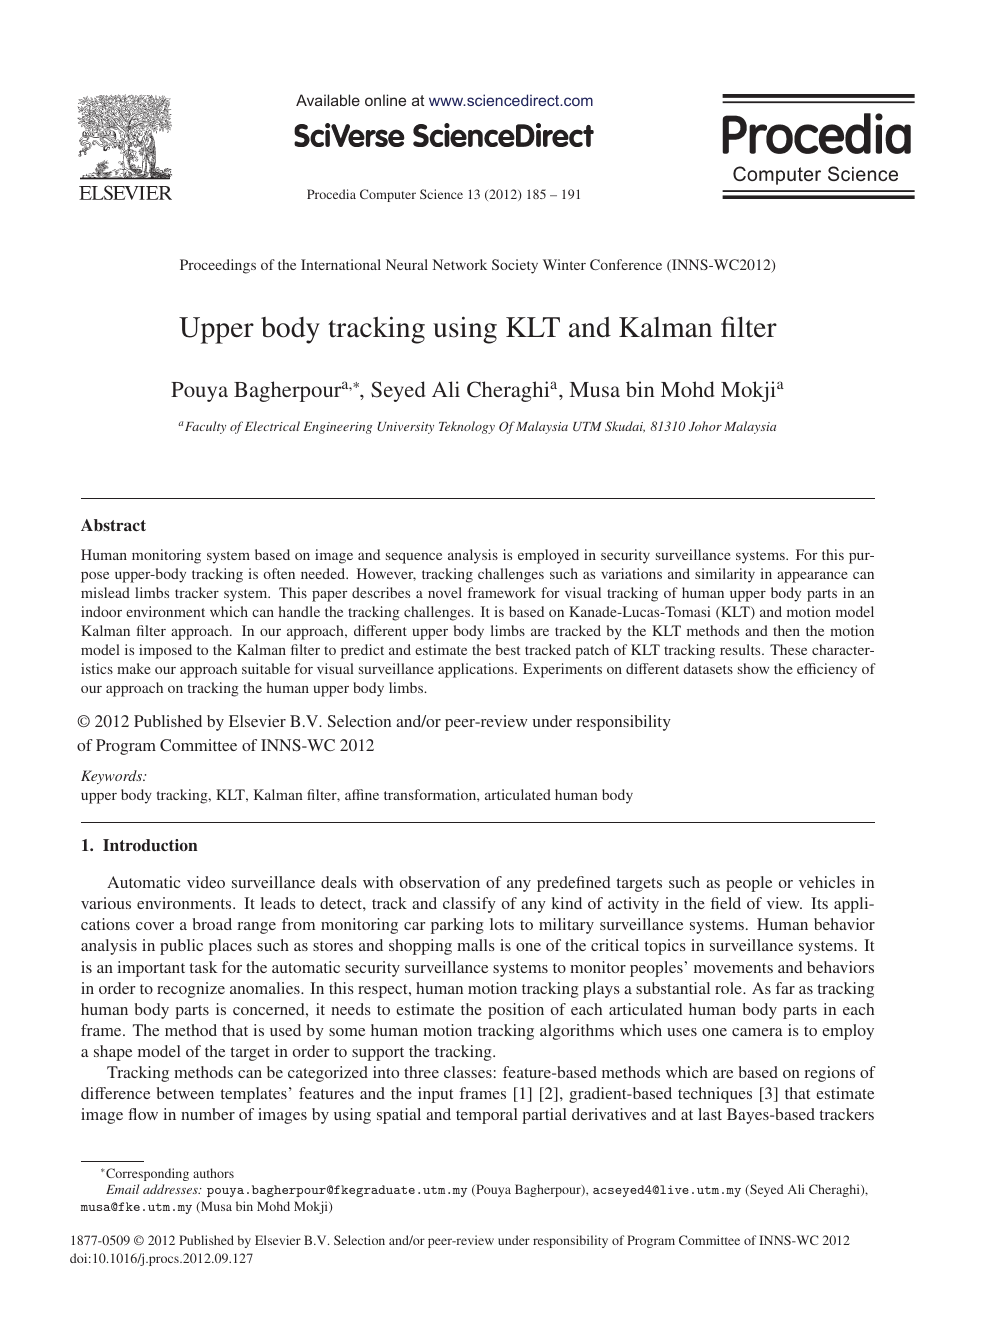 Upper Body Tracking Using KLT and Kalman Filter – topic of